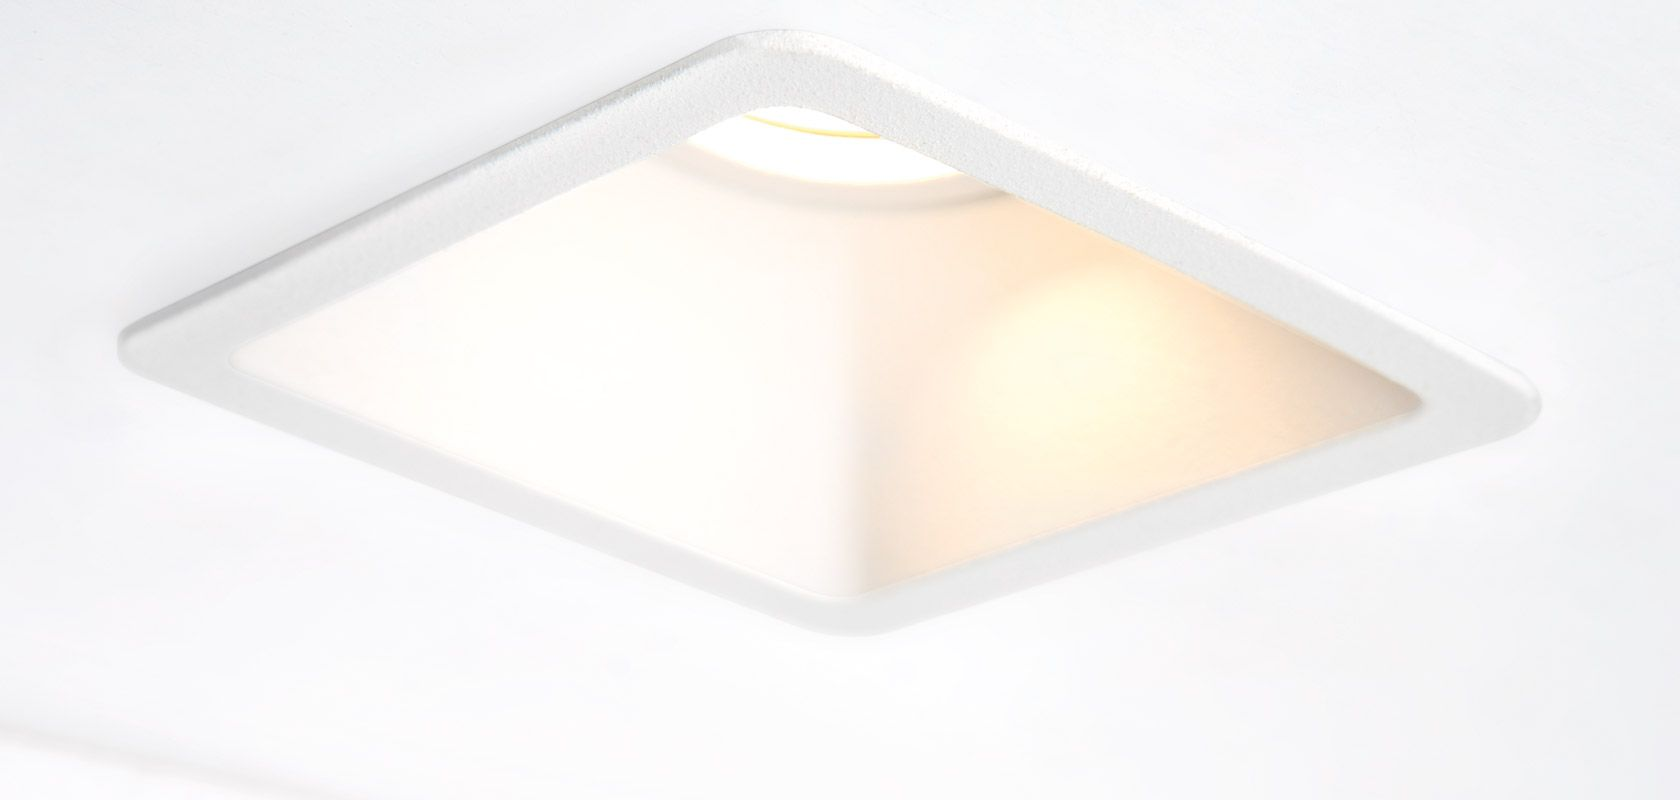 Lotis Square Recessed Lighting Fixture From Modular Lighting Instruments Tpl Li Recessed Lighting Fixtures Architectural Lighting Fixtures Recessed Lighting